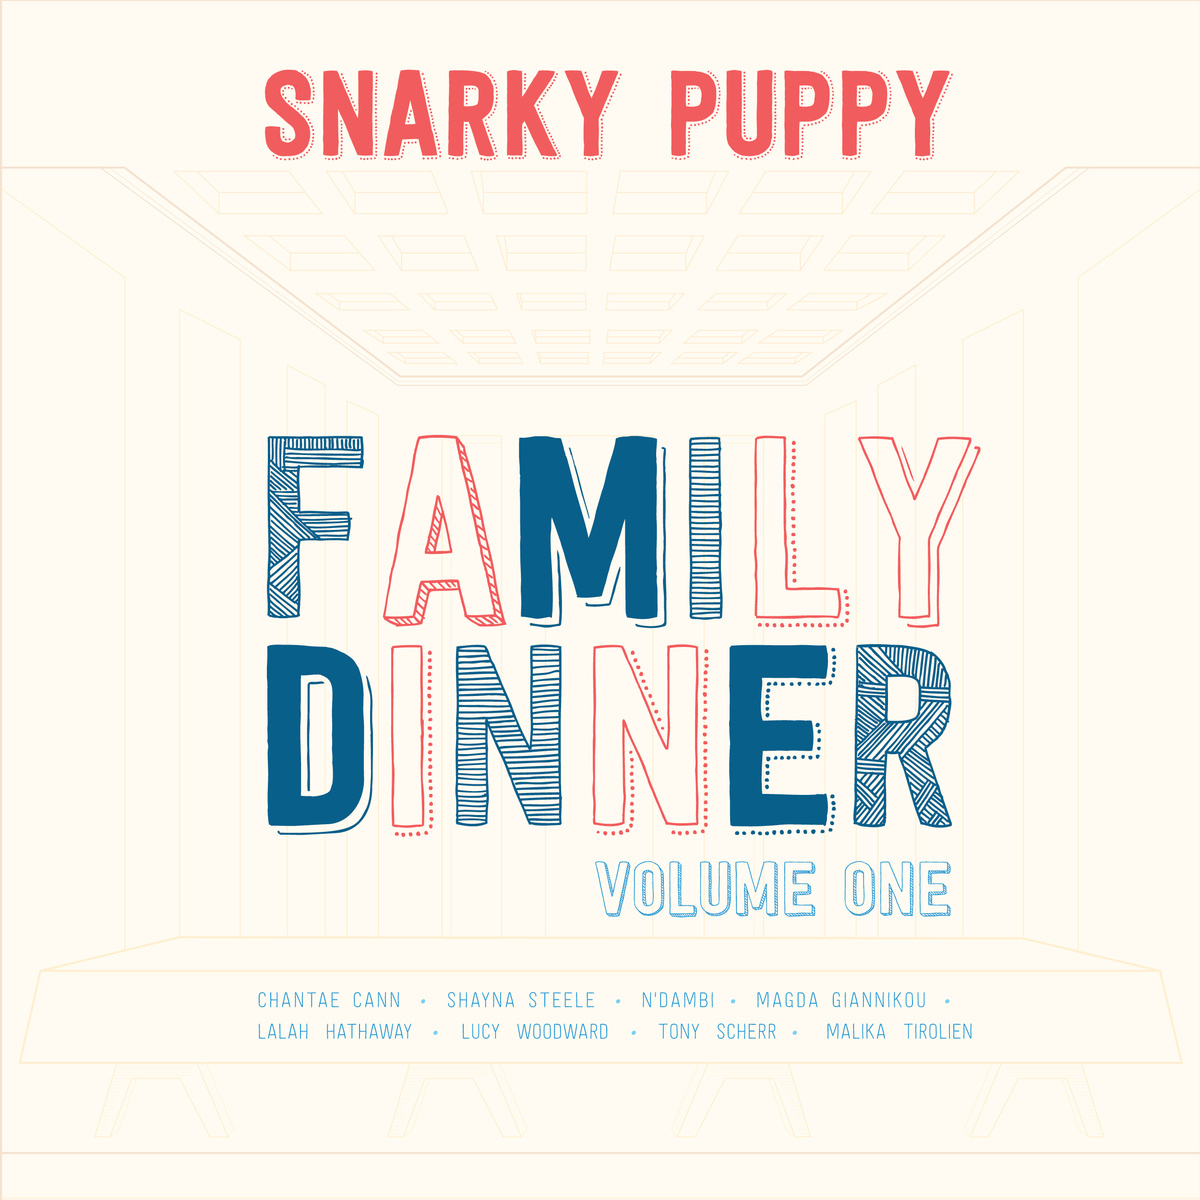 snarky puppy artists groundup music